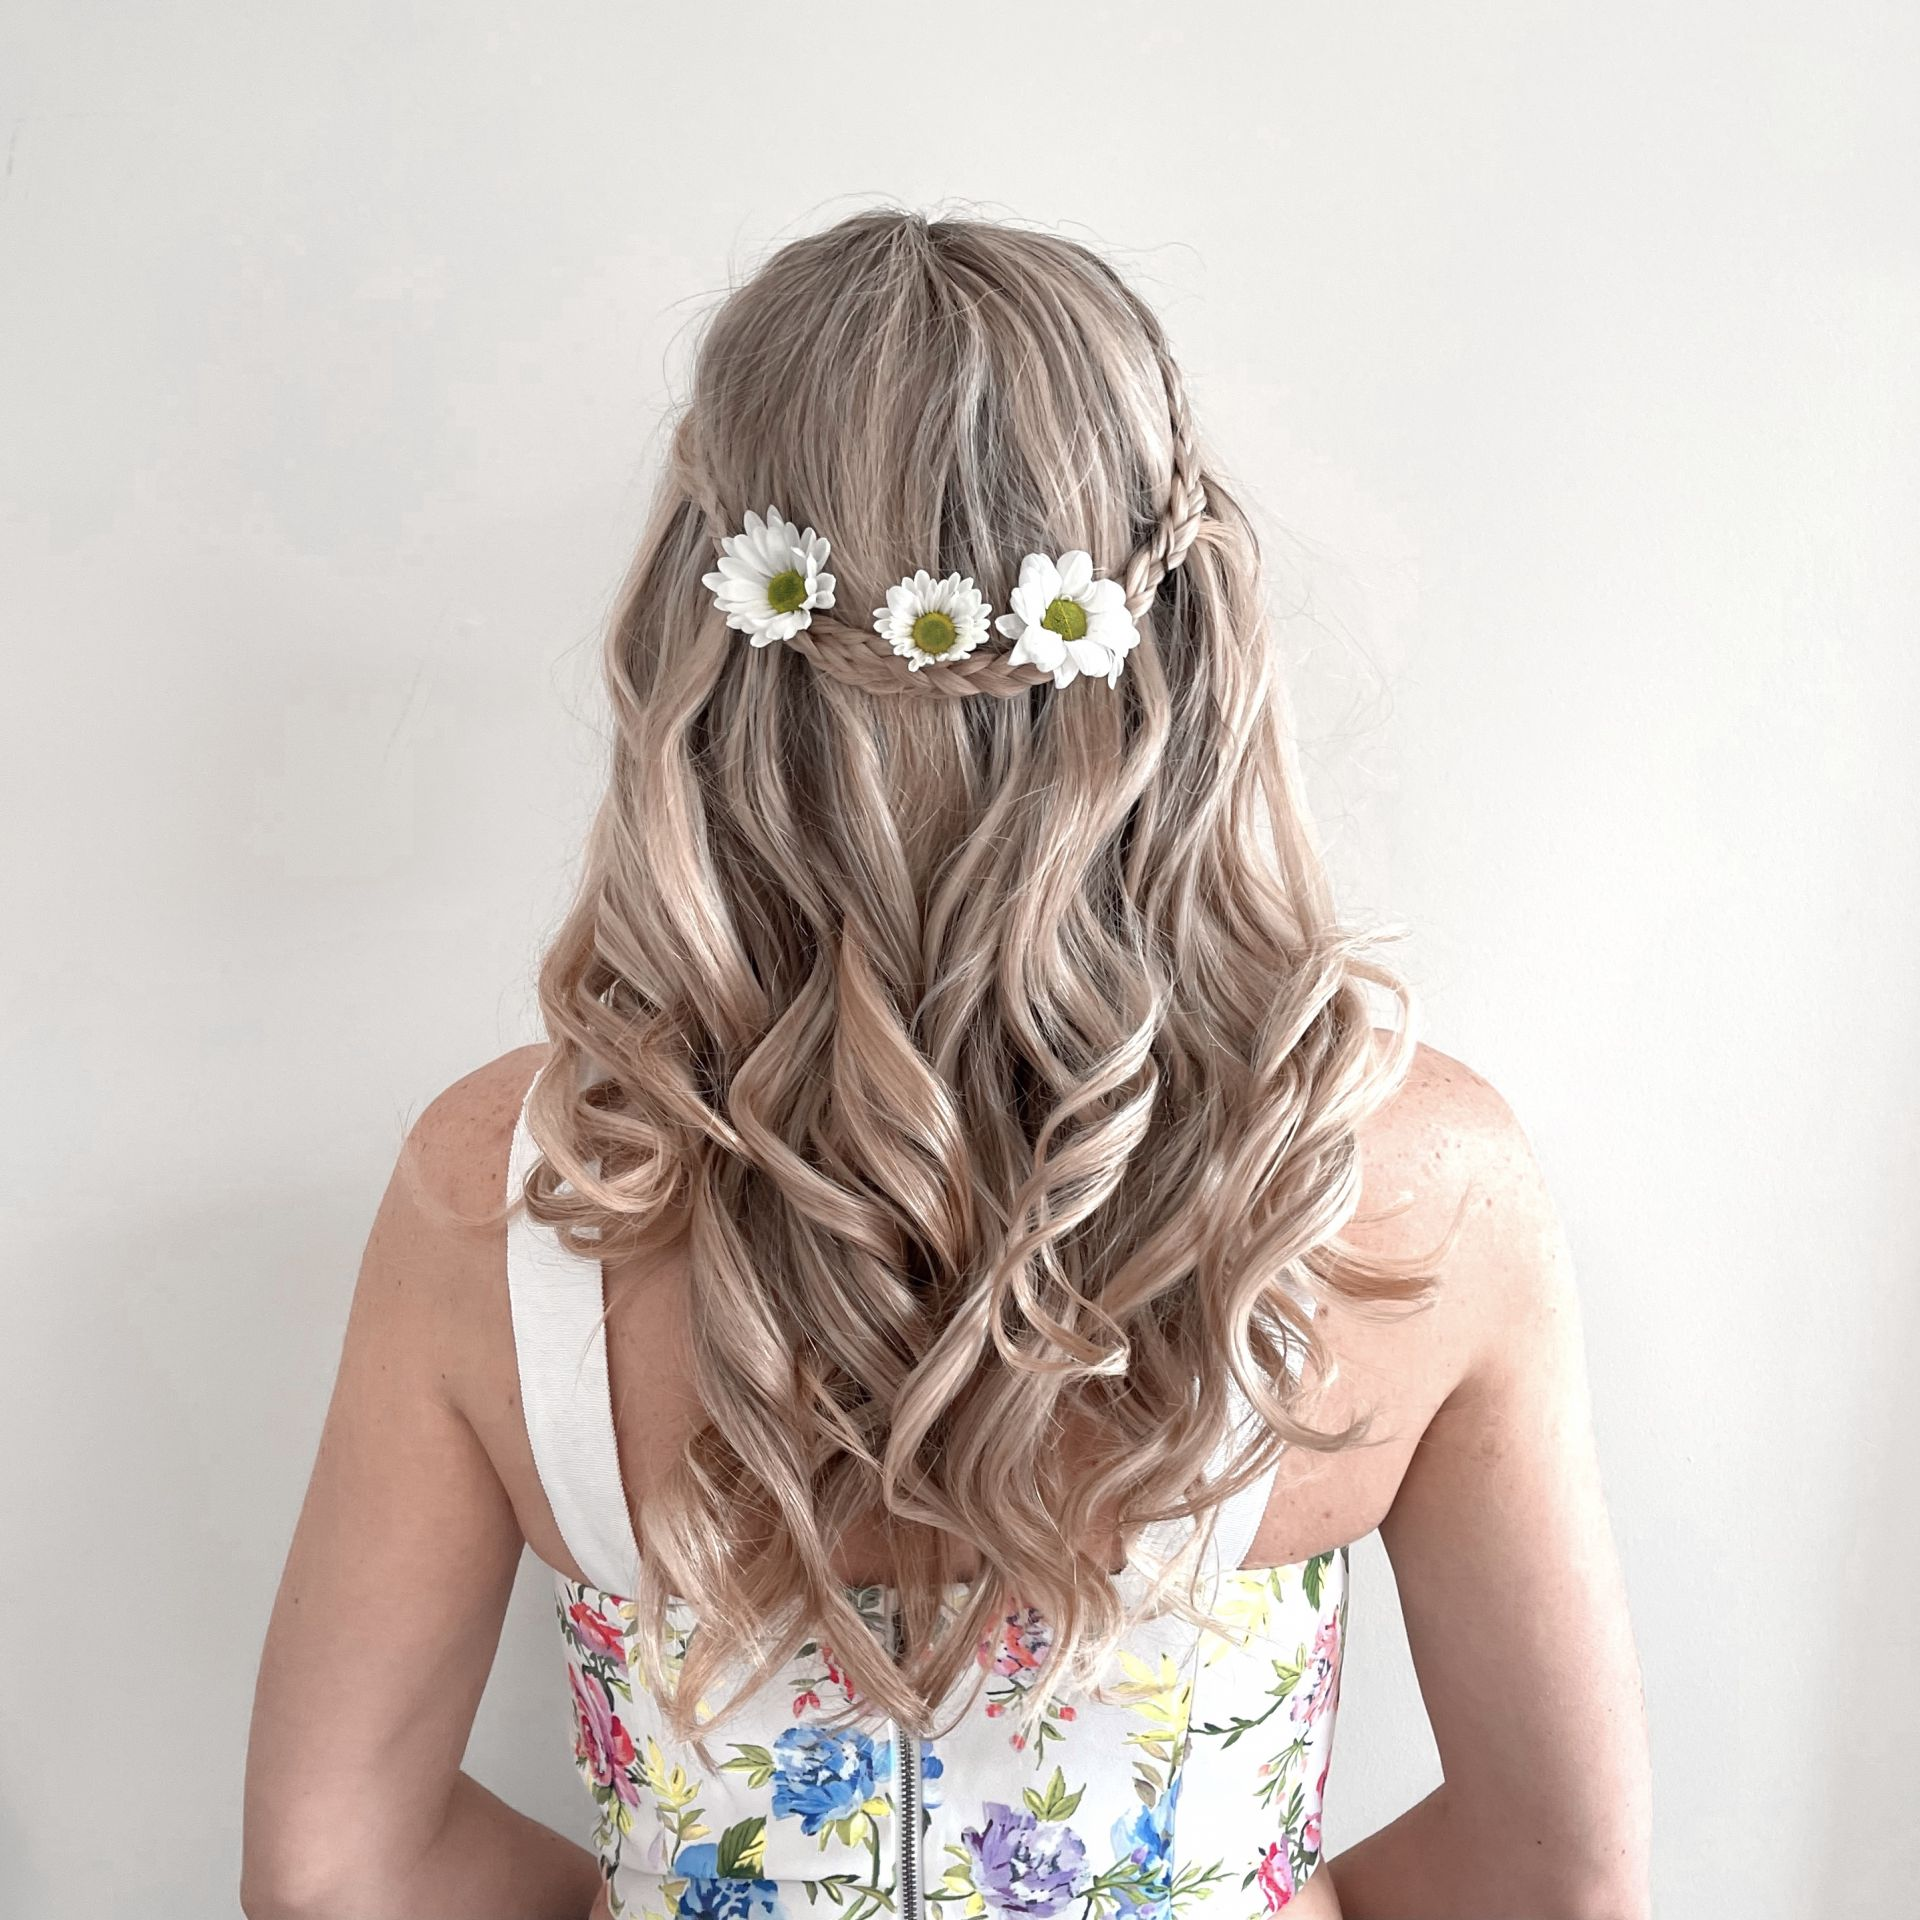 spring hairstyles for long hair curled hair with a braid and flowers